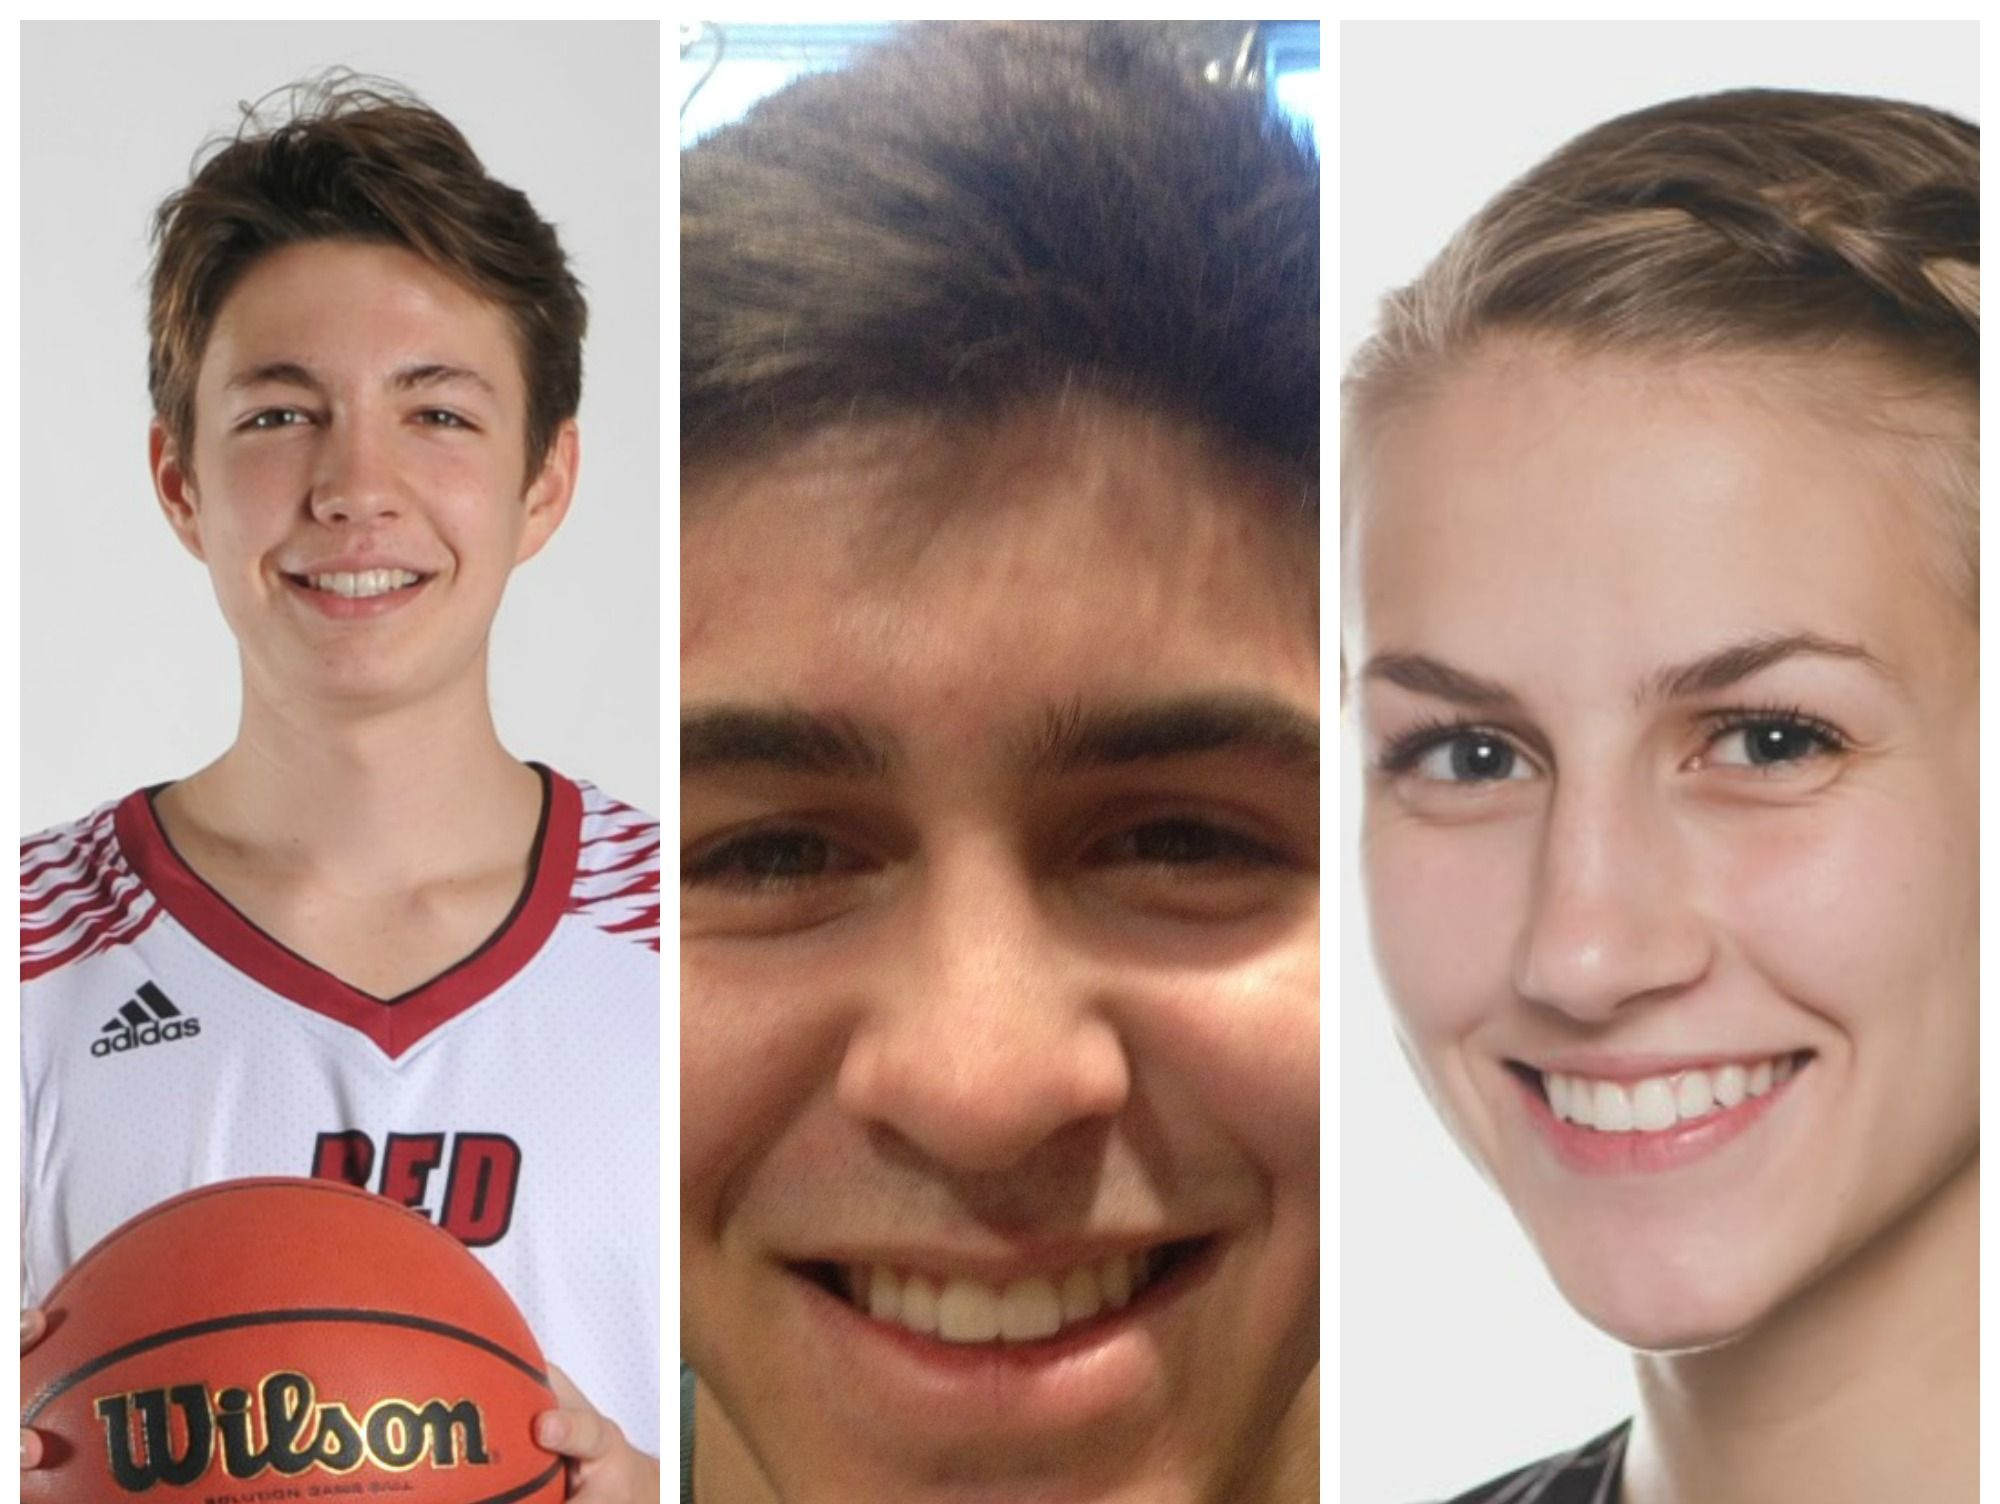 Congratulations to the Arizona Sports Awards Academic All-Star of the Week, Jacob Ries, and Athletes of the Week, Gator Groves and Lacee Jenkins, presented by La-Z-Boy Furniture Galleries, for Jan. 12-19.